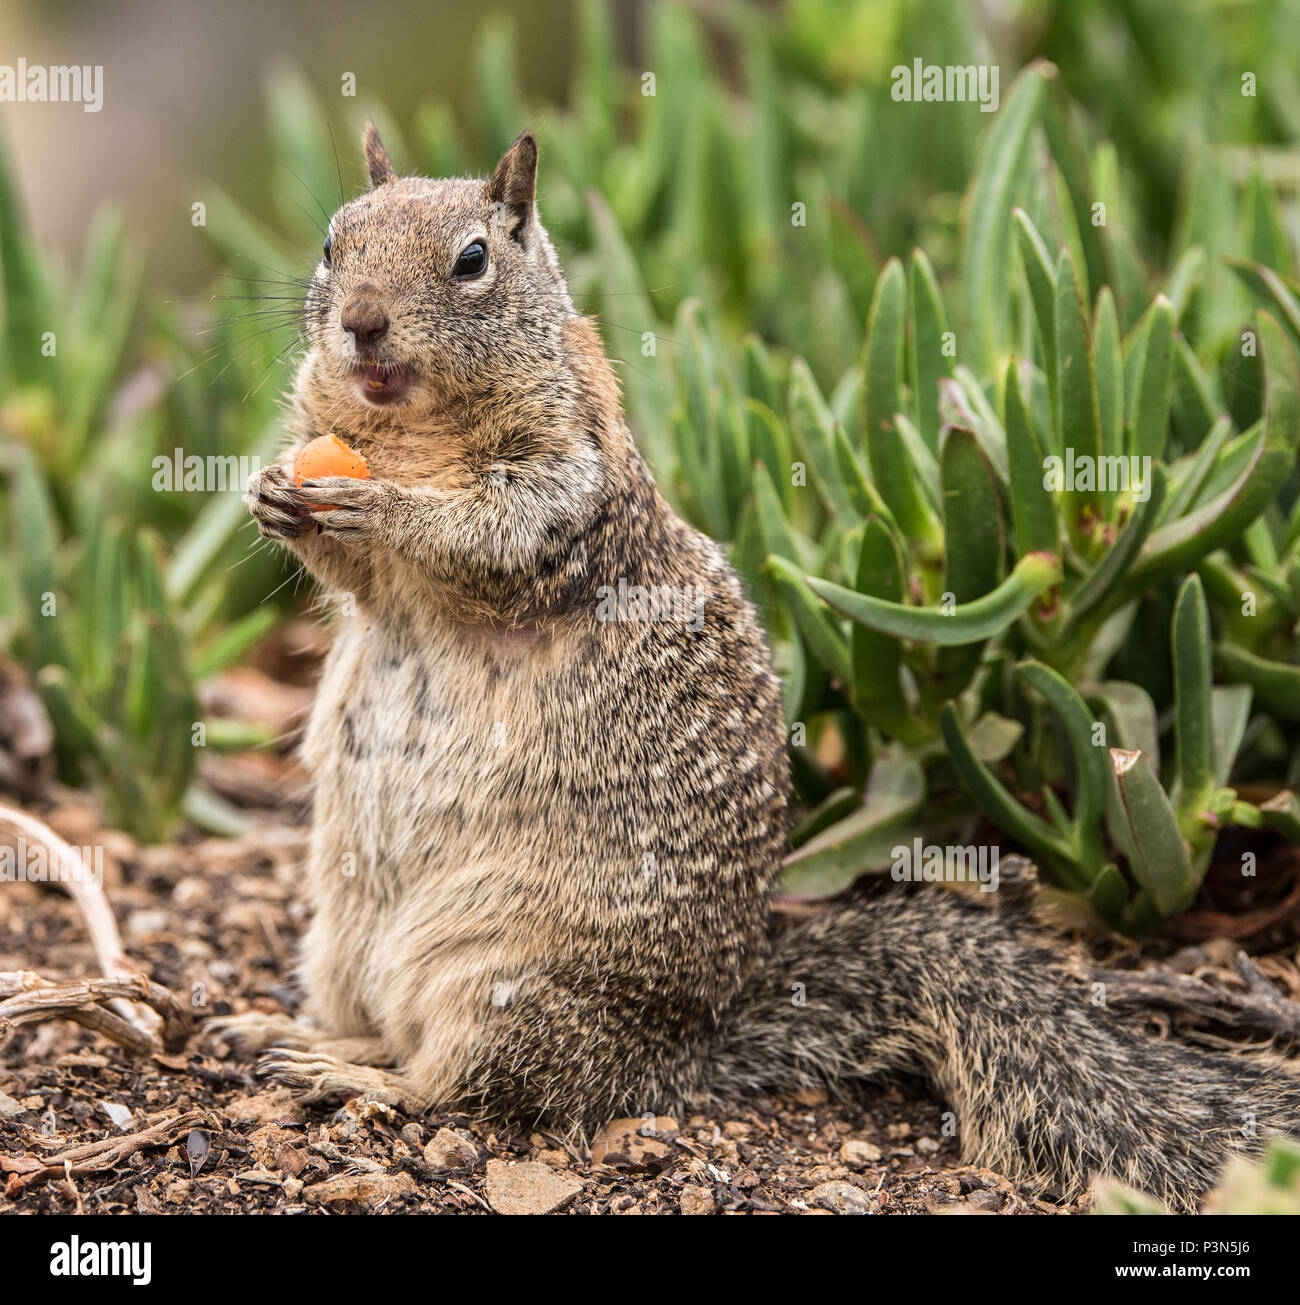 Squirrel sitting up eating a carrot with a green background Stock Photo